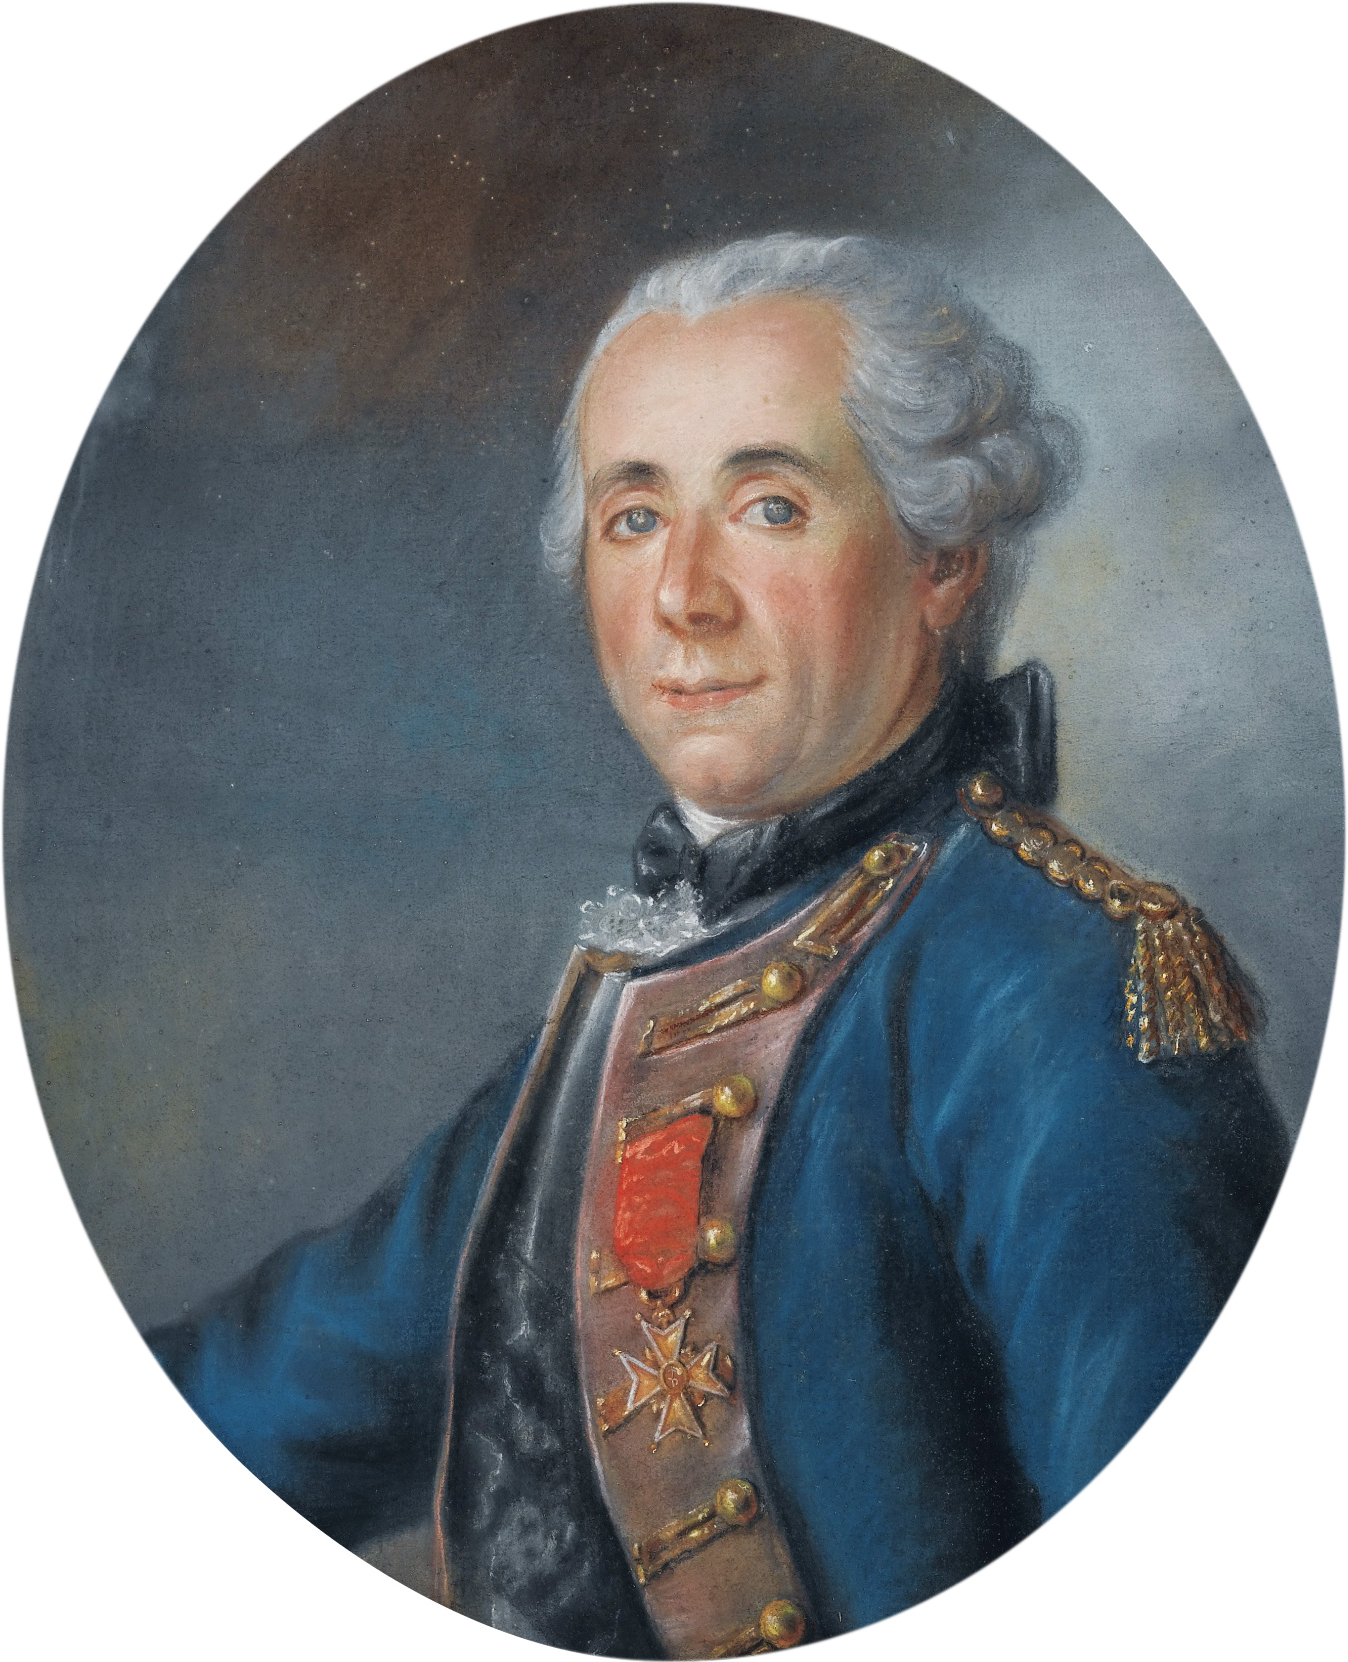 https://upload.wikimedia.org/wikipedia/commons/0/06/Jean_Baptiste_Berthier%2C_by_French_school_of_the_18th_century.jpg